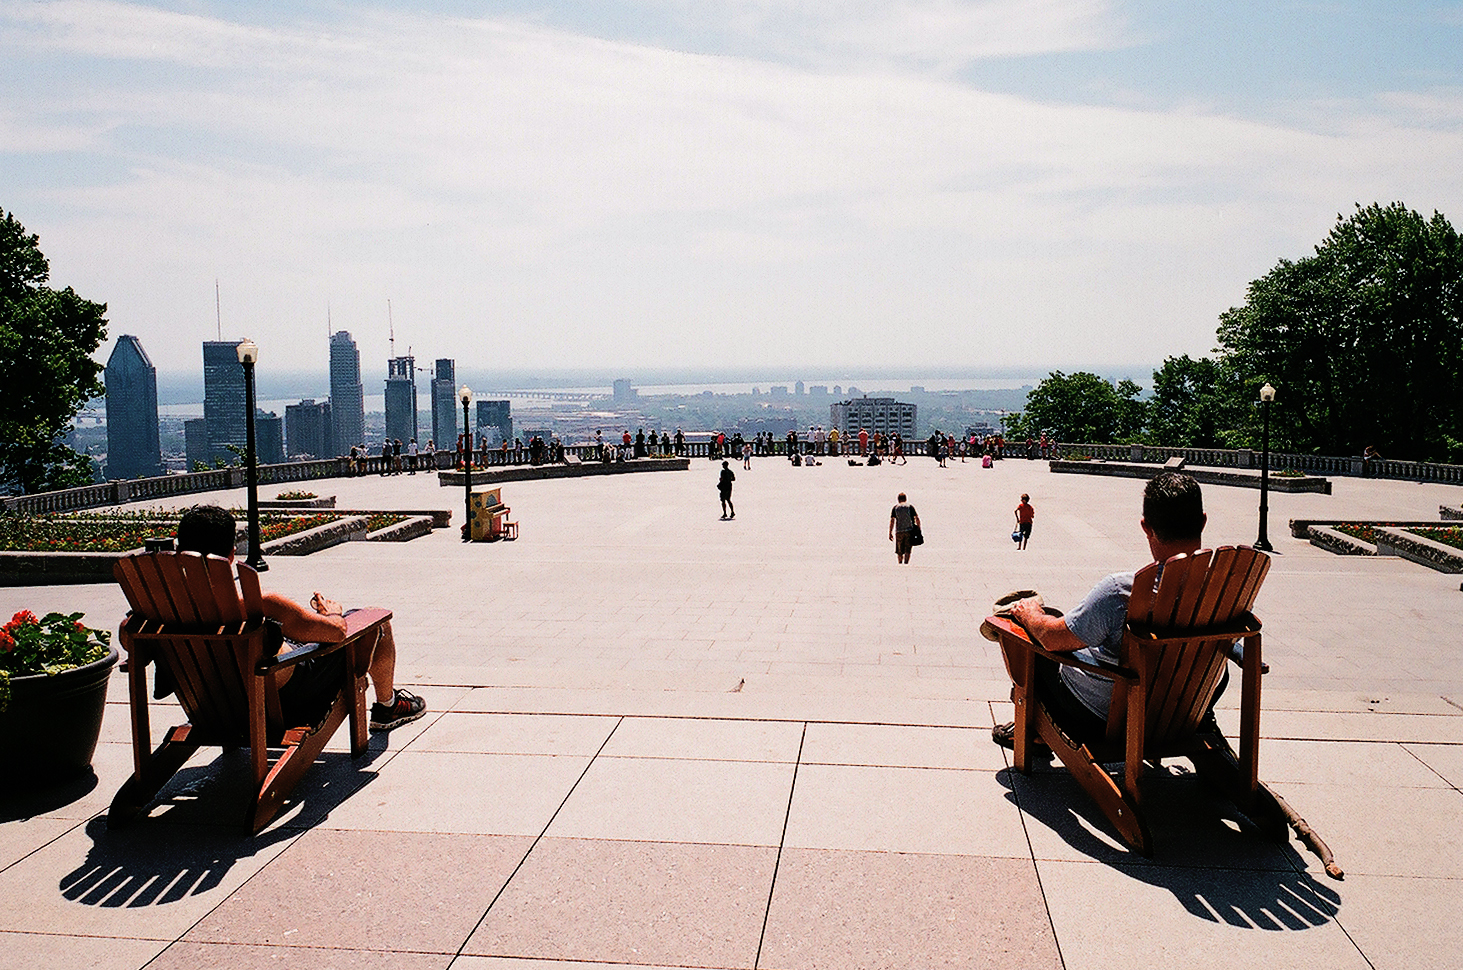 Top of the Mount Royal